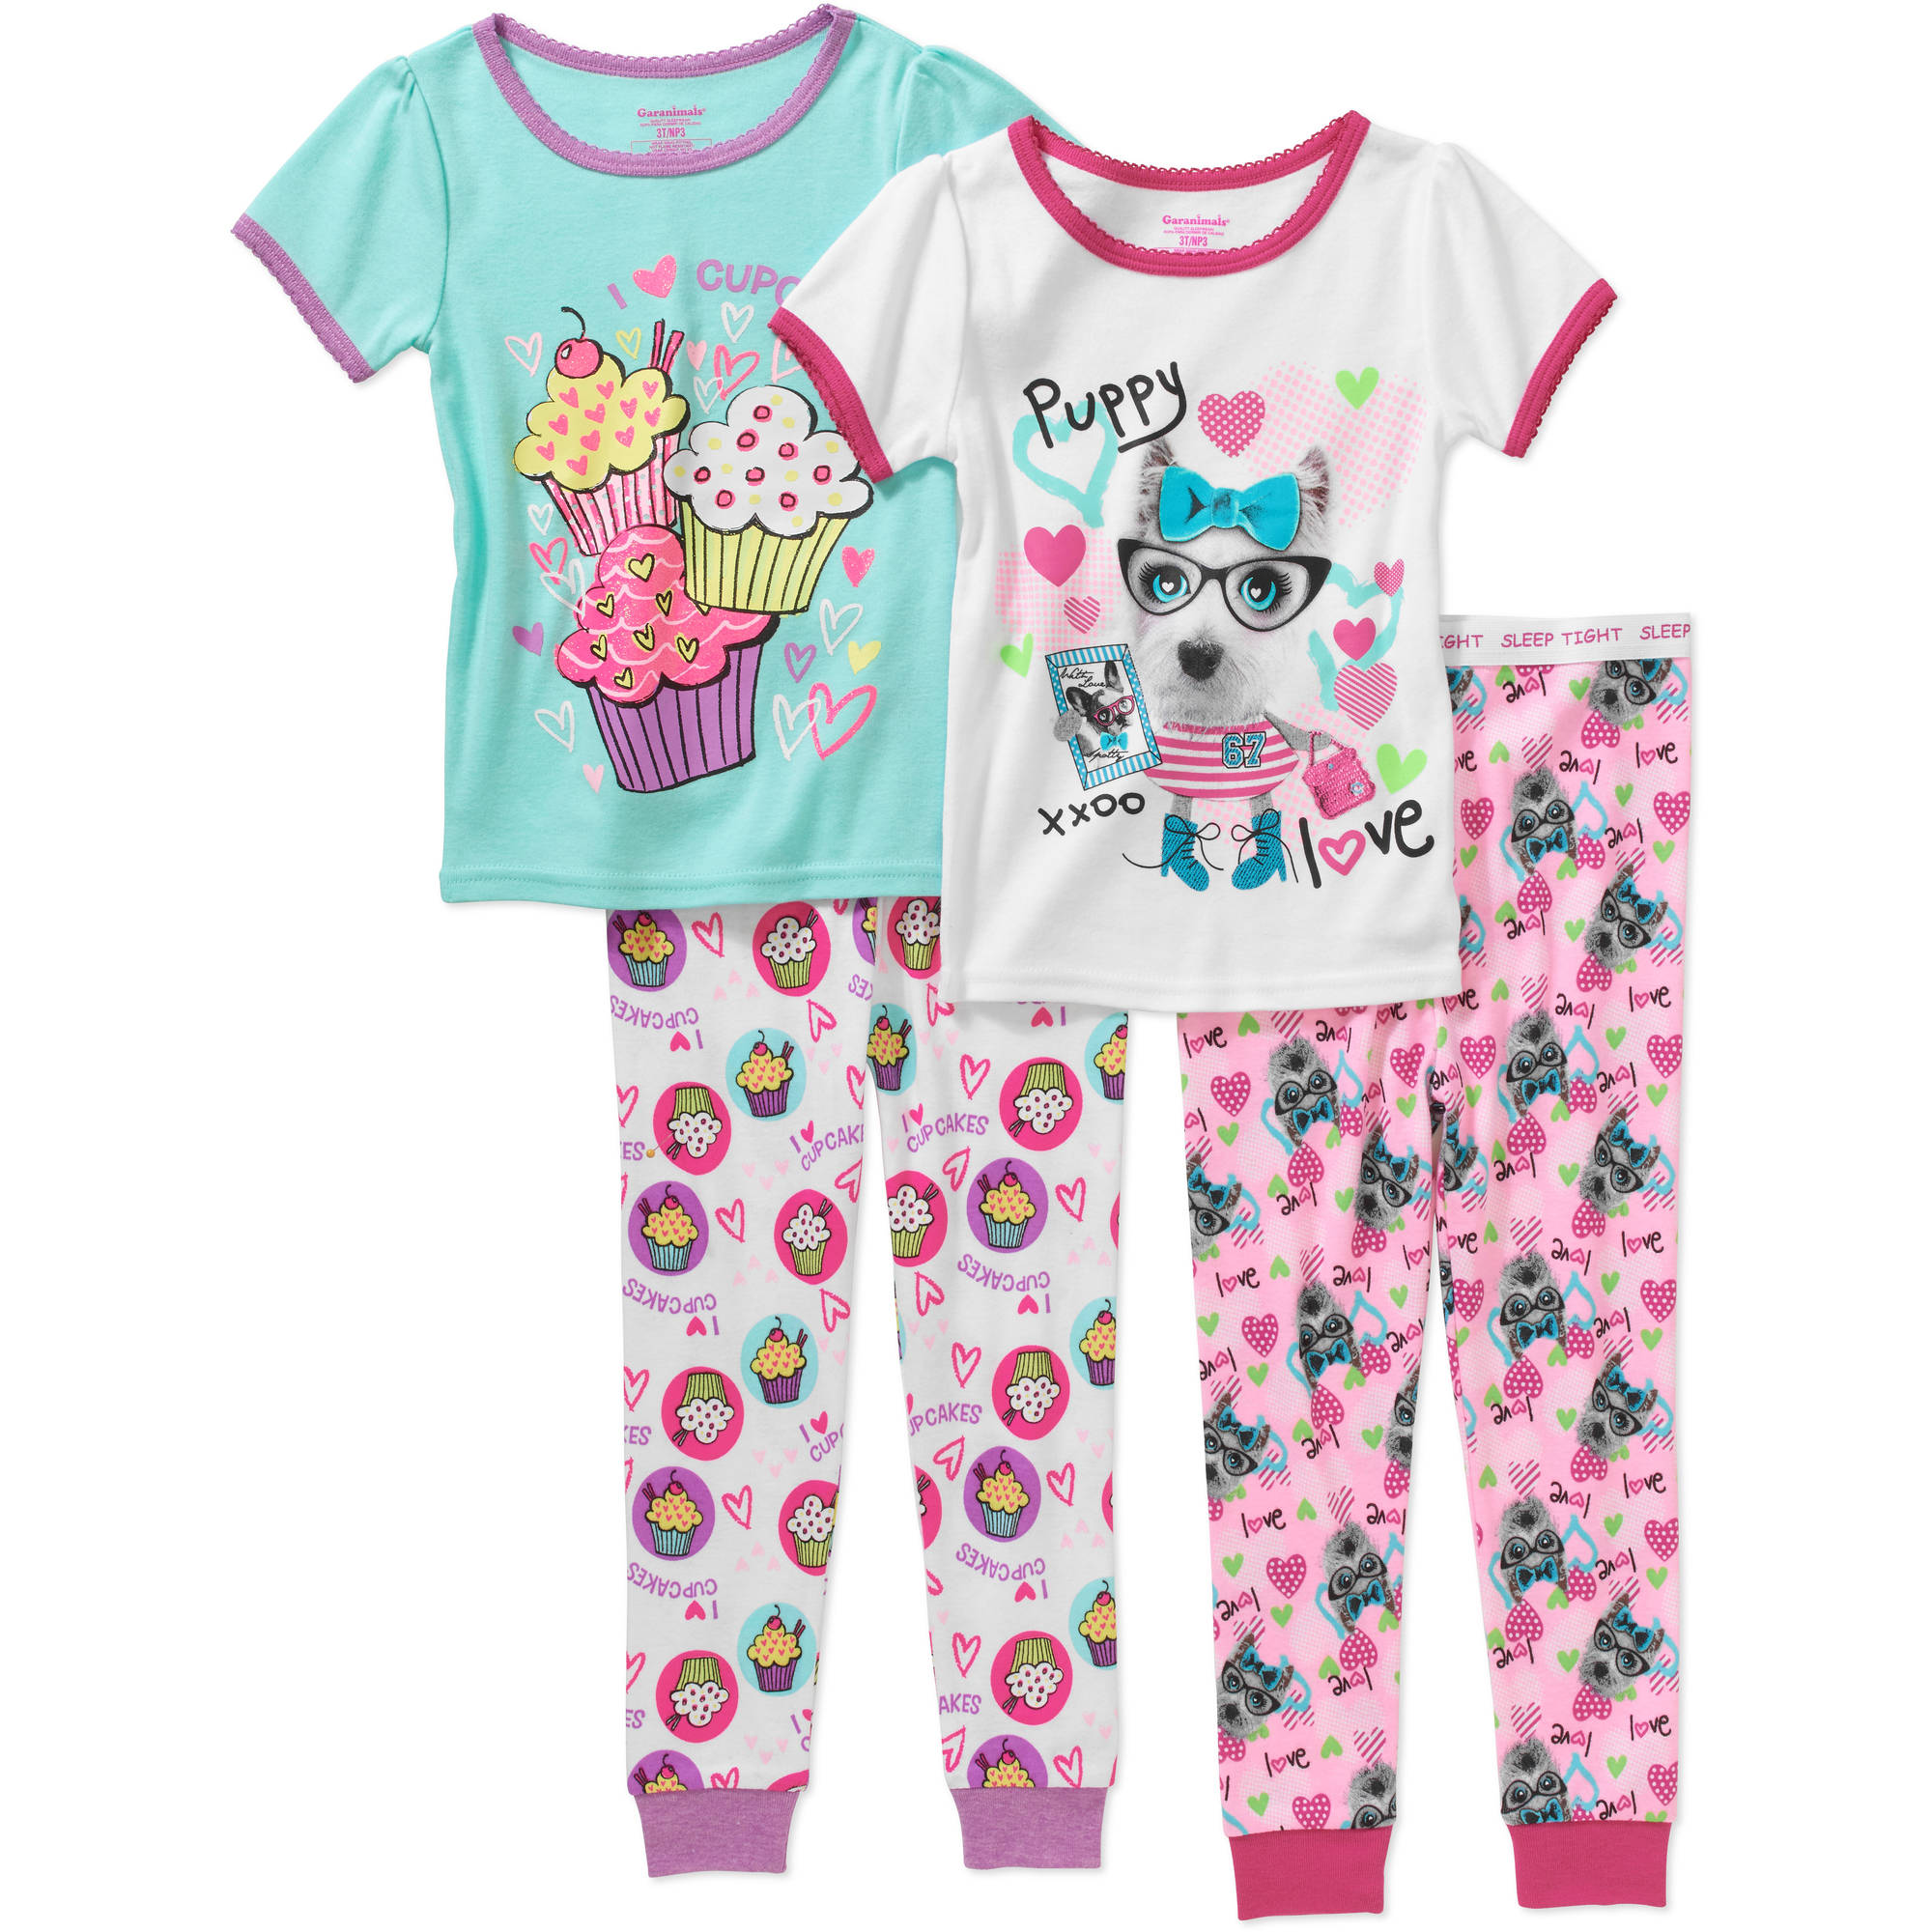 Toddler Girl Tight-fit Cotton